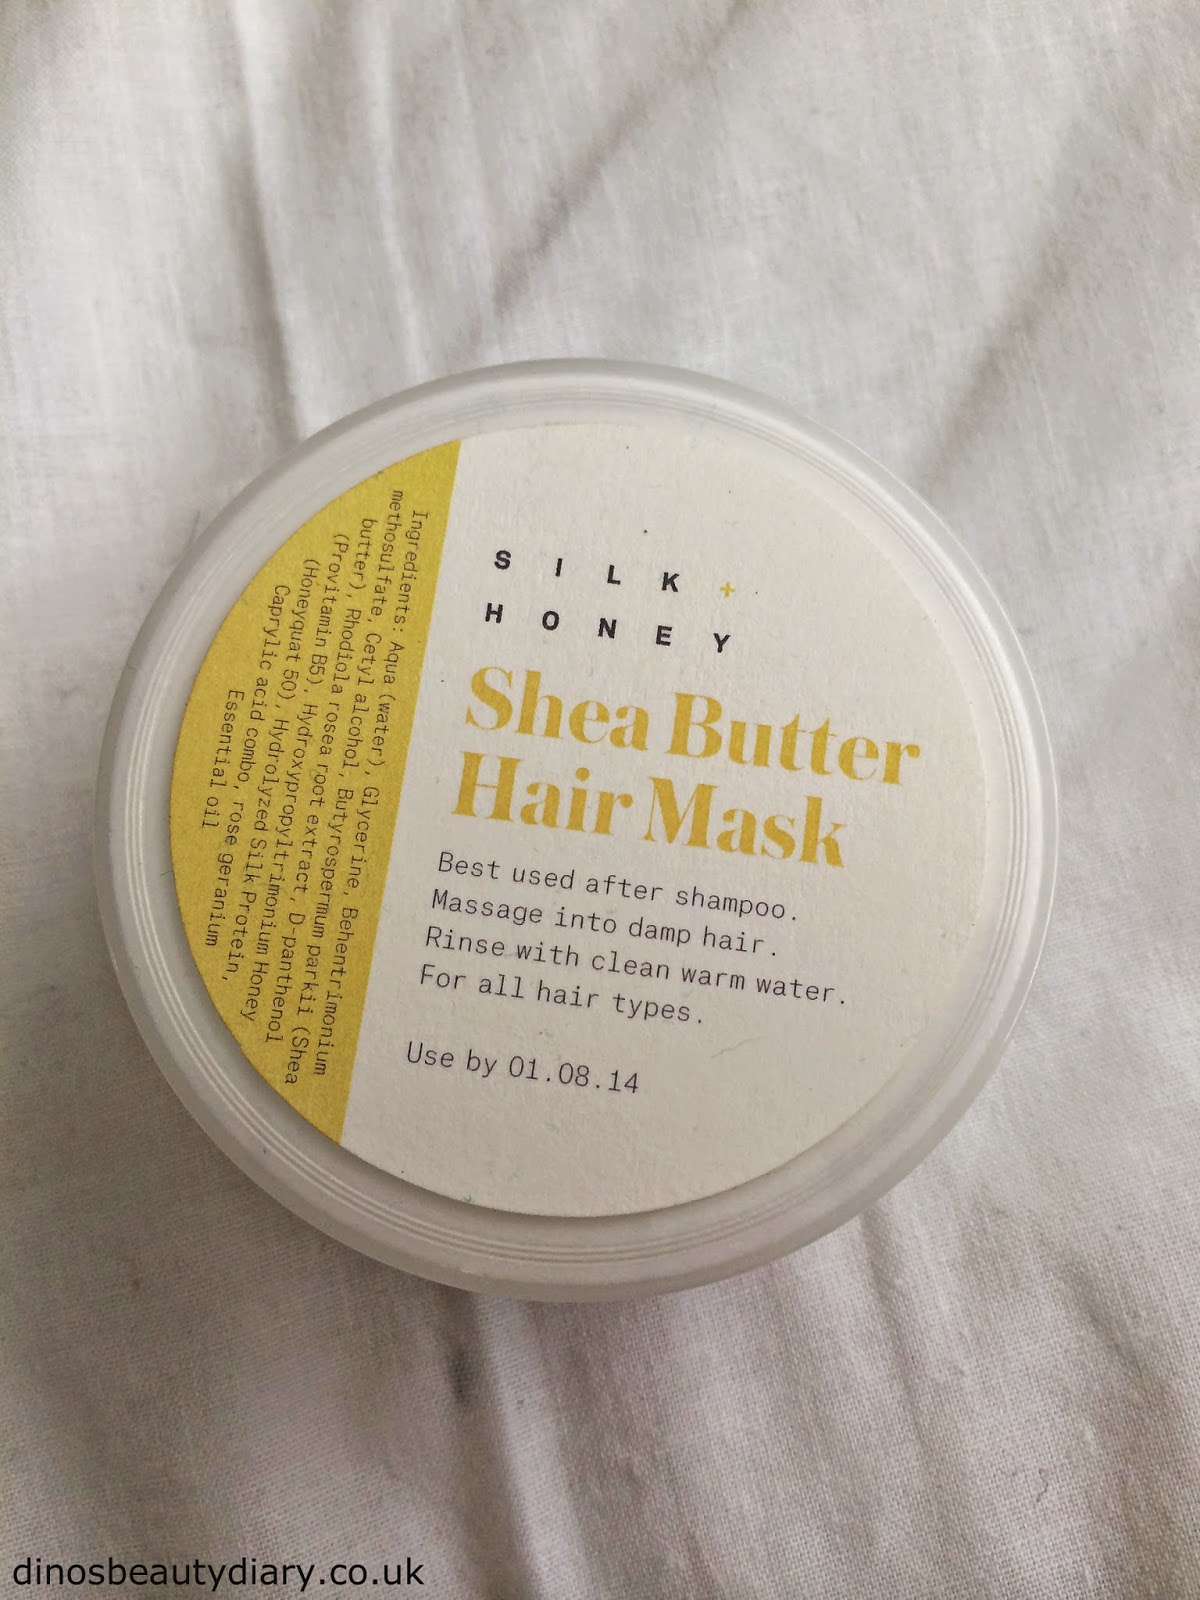 Dinos Beauty Diary - June and July Birchbox - Silk + Honey Hair Mask